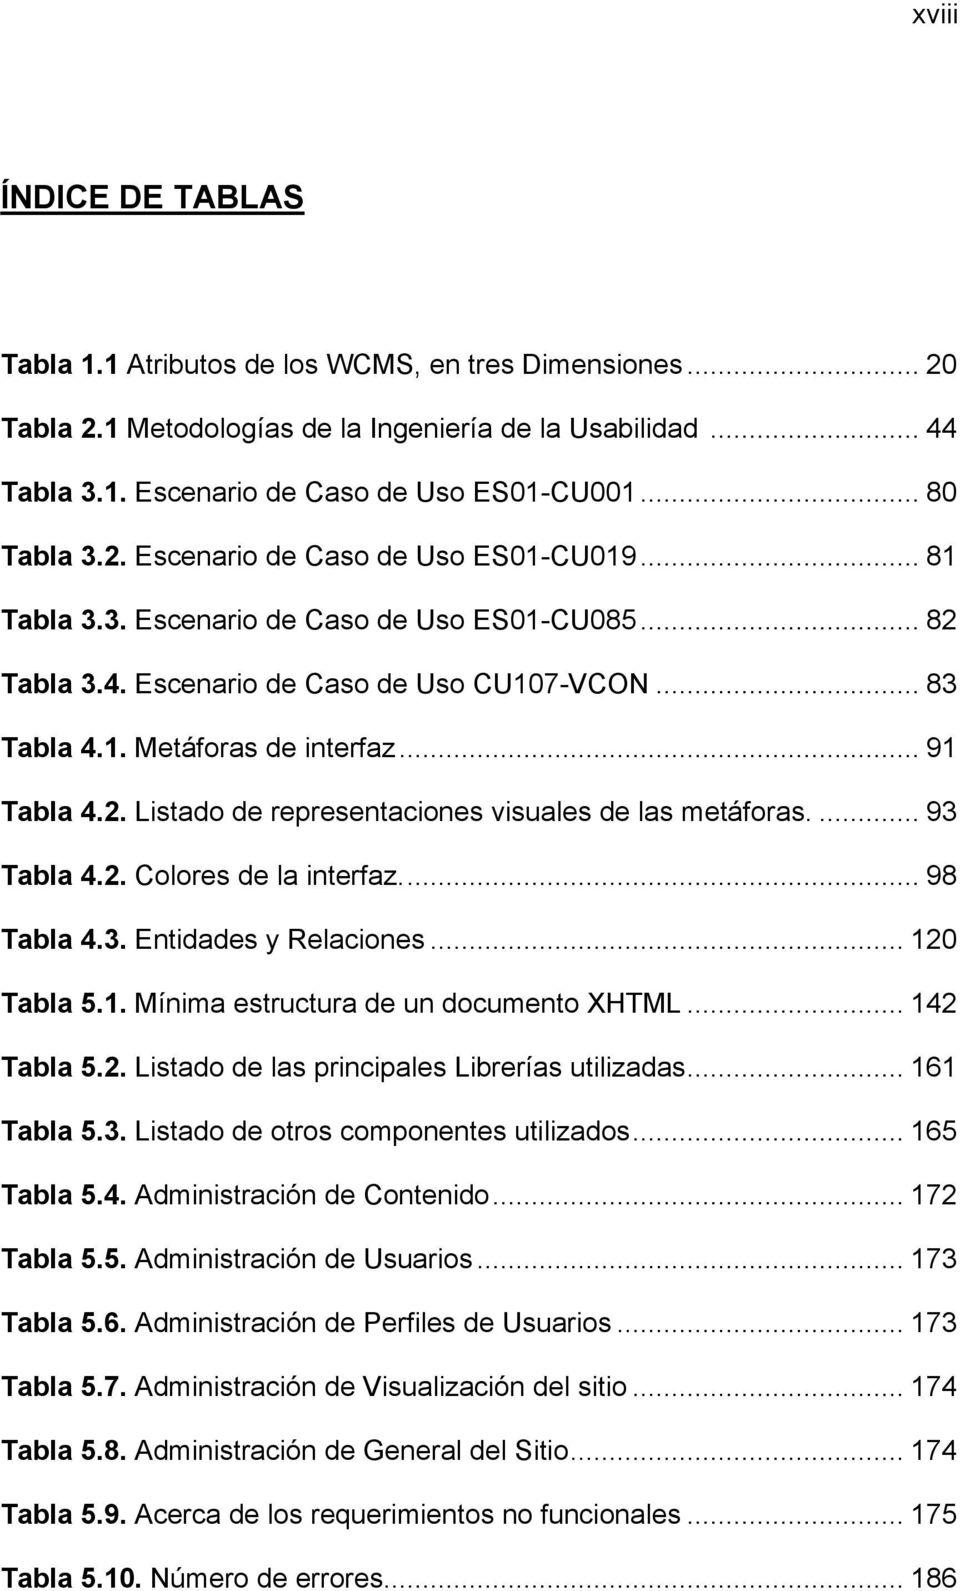 .. 91 Tabla 4.2. Listado de representaciones visuales de las metáforas.... 93 Tabla 4.2. Colores de la interfaz.... 98 Tabla 4.3. Entidades y Relaciones... 120 Tabla 5.1. Mínima estructura de un documento XHTML.